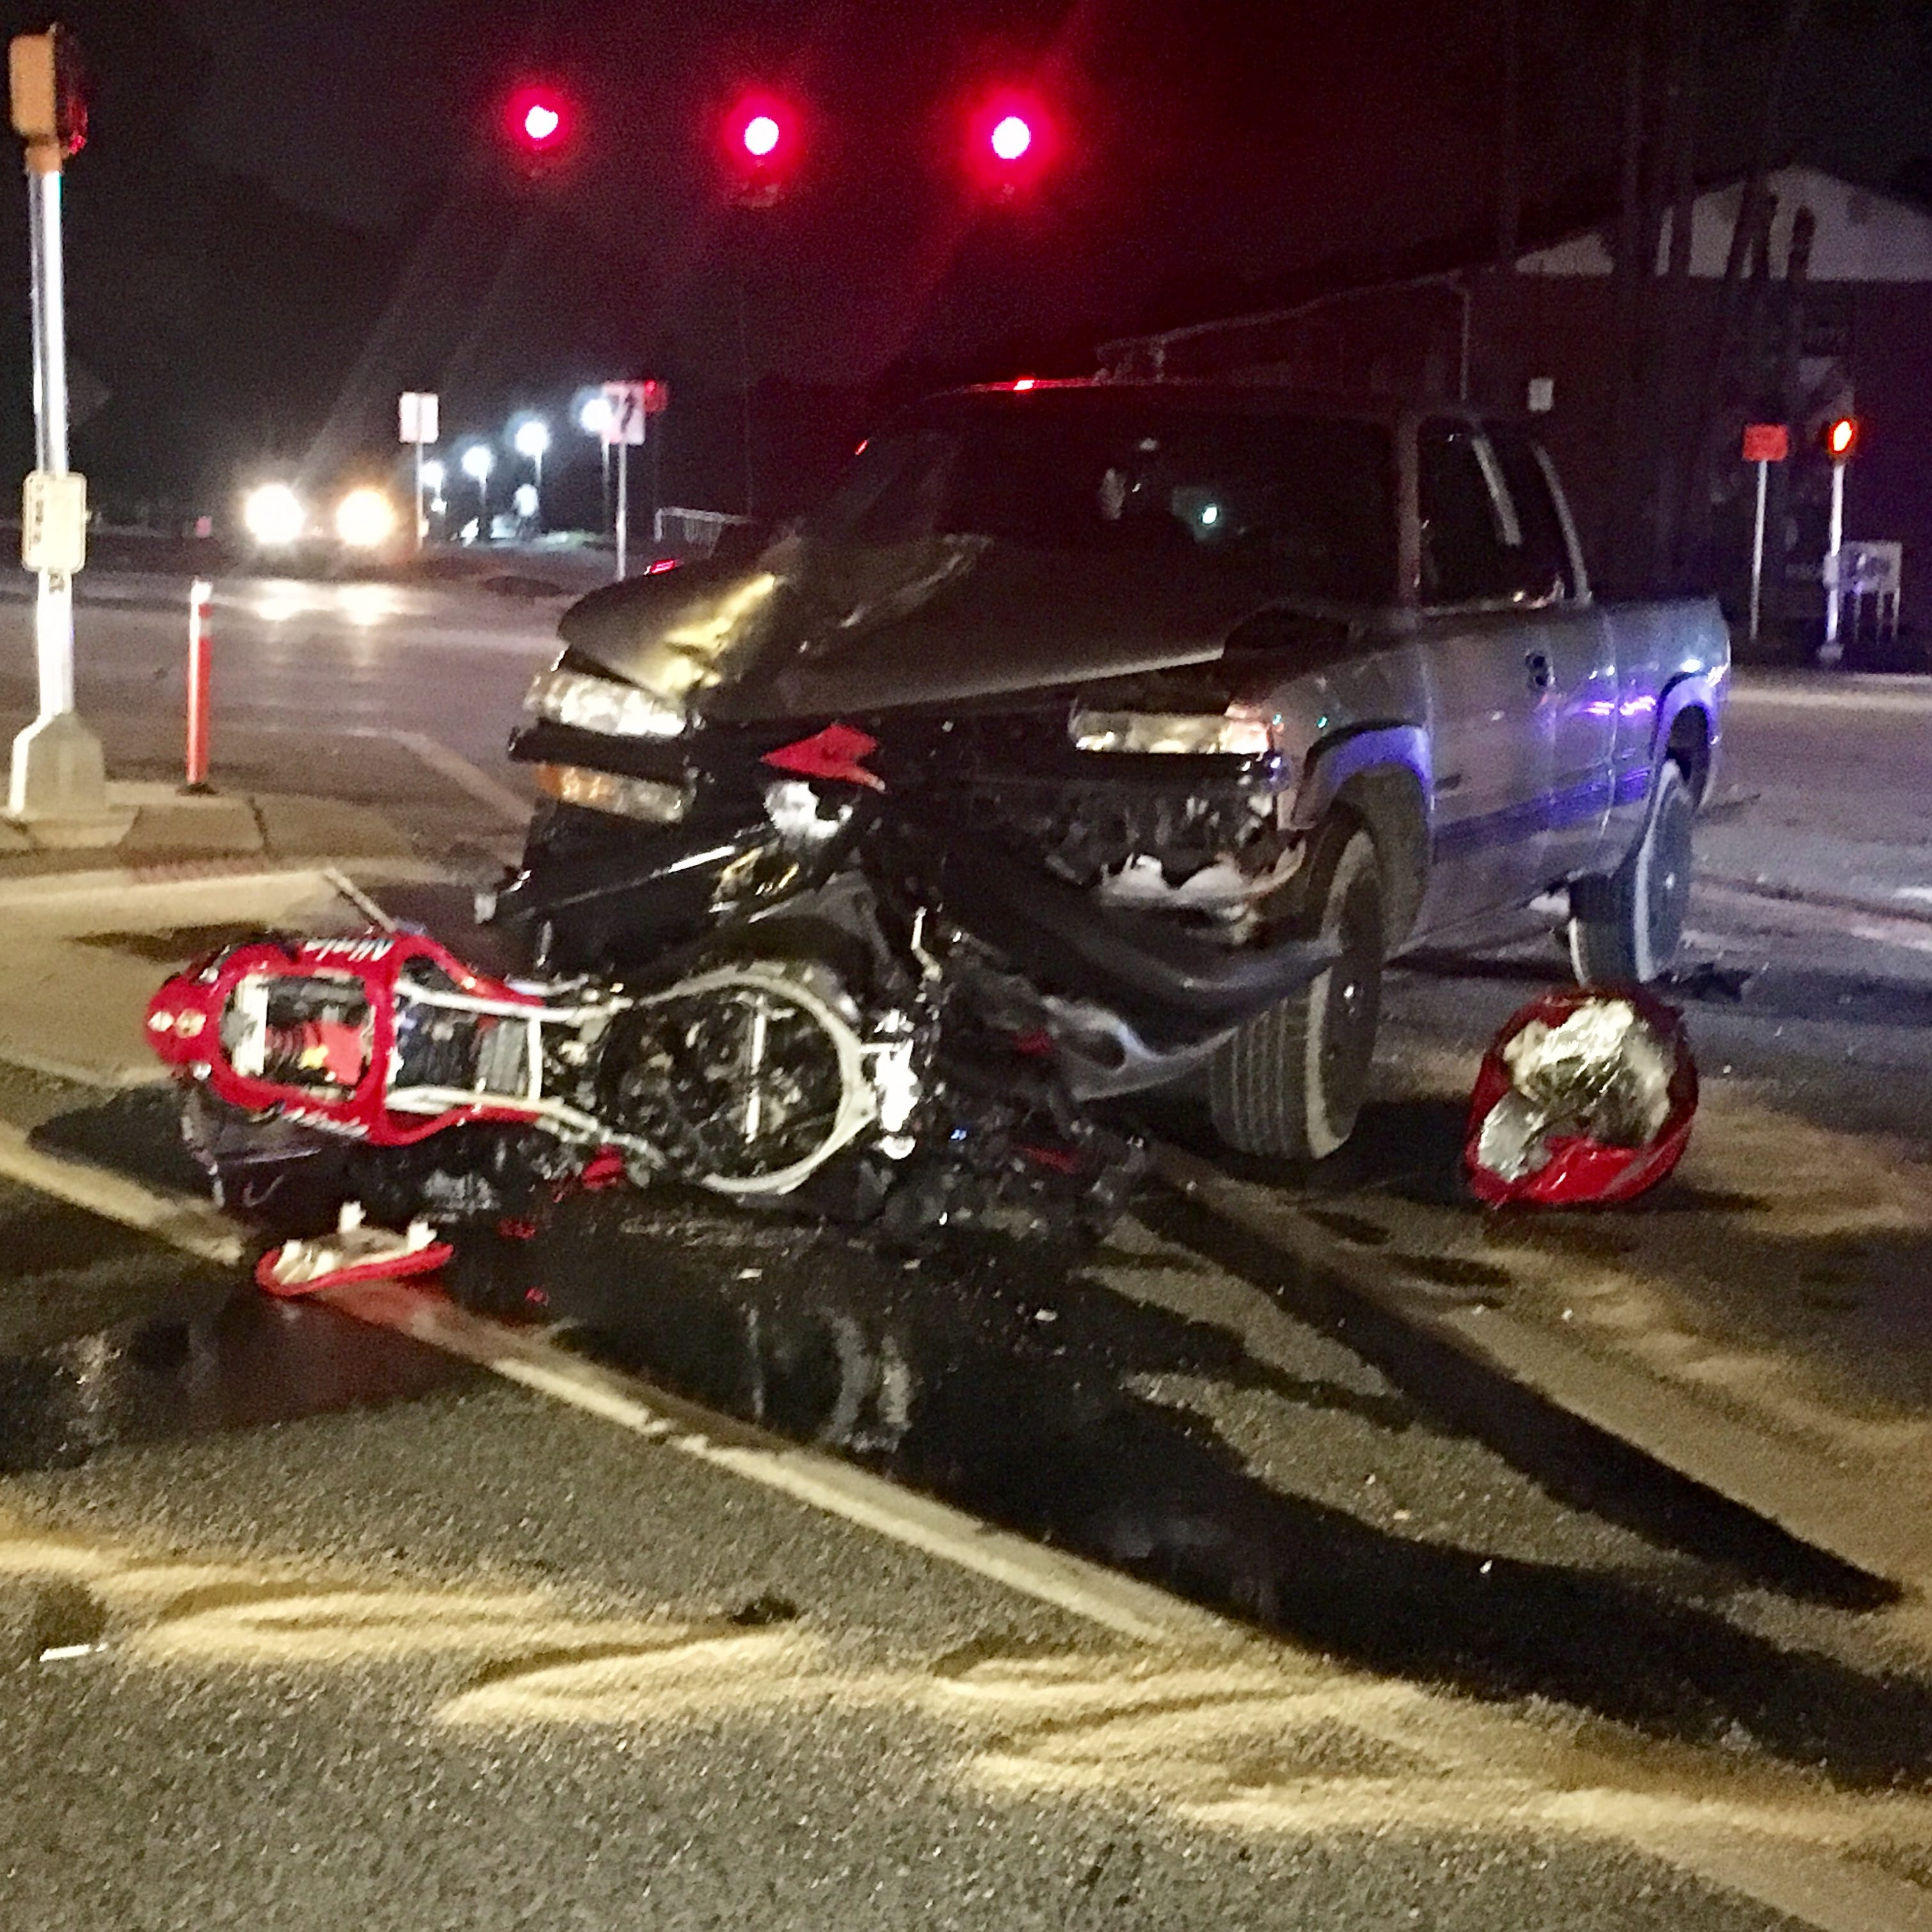 Motorcycle collision closes Del. 273 near New Castle on Wednesday night